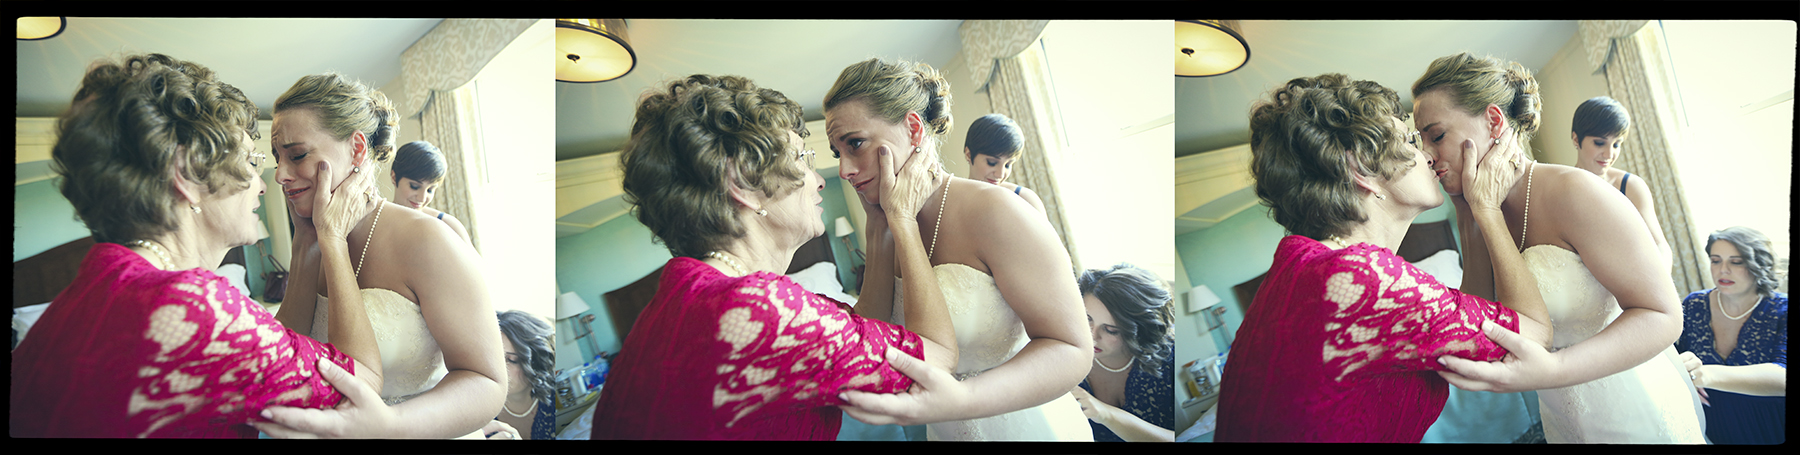 Putting on the wedding dress with mom.